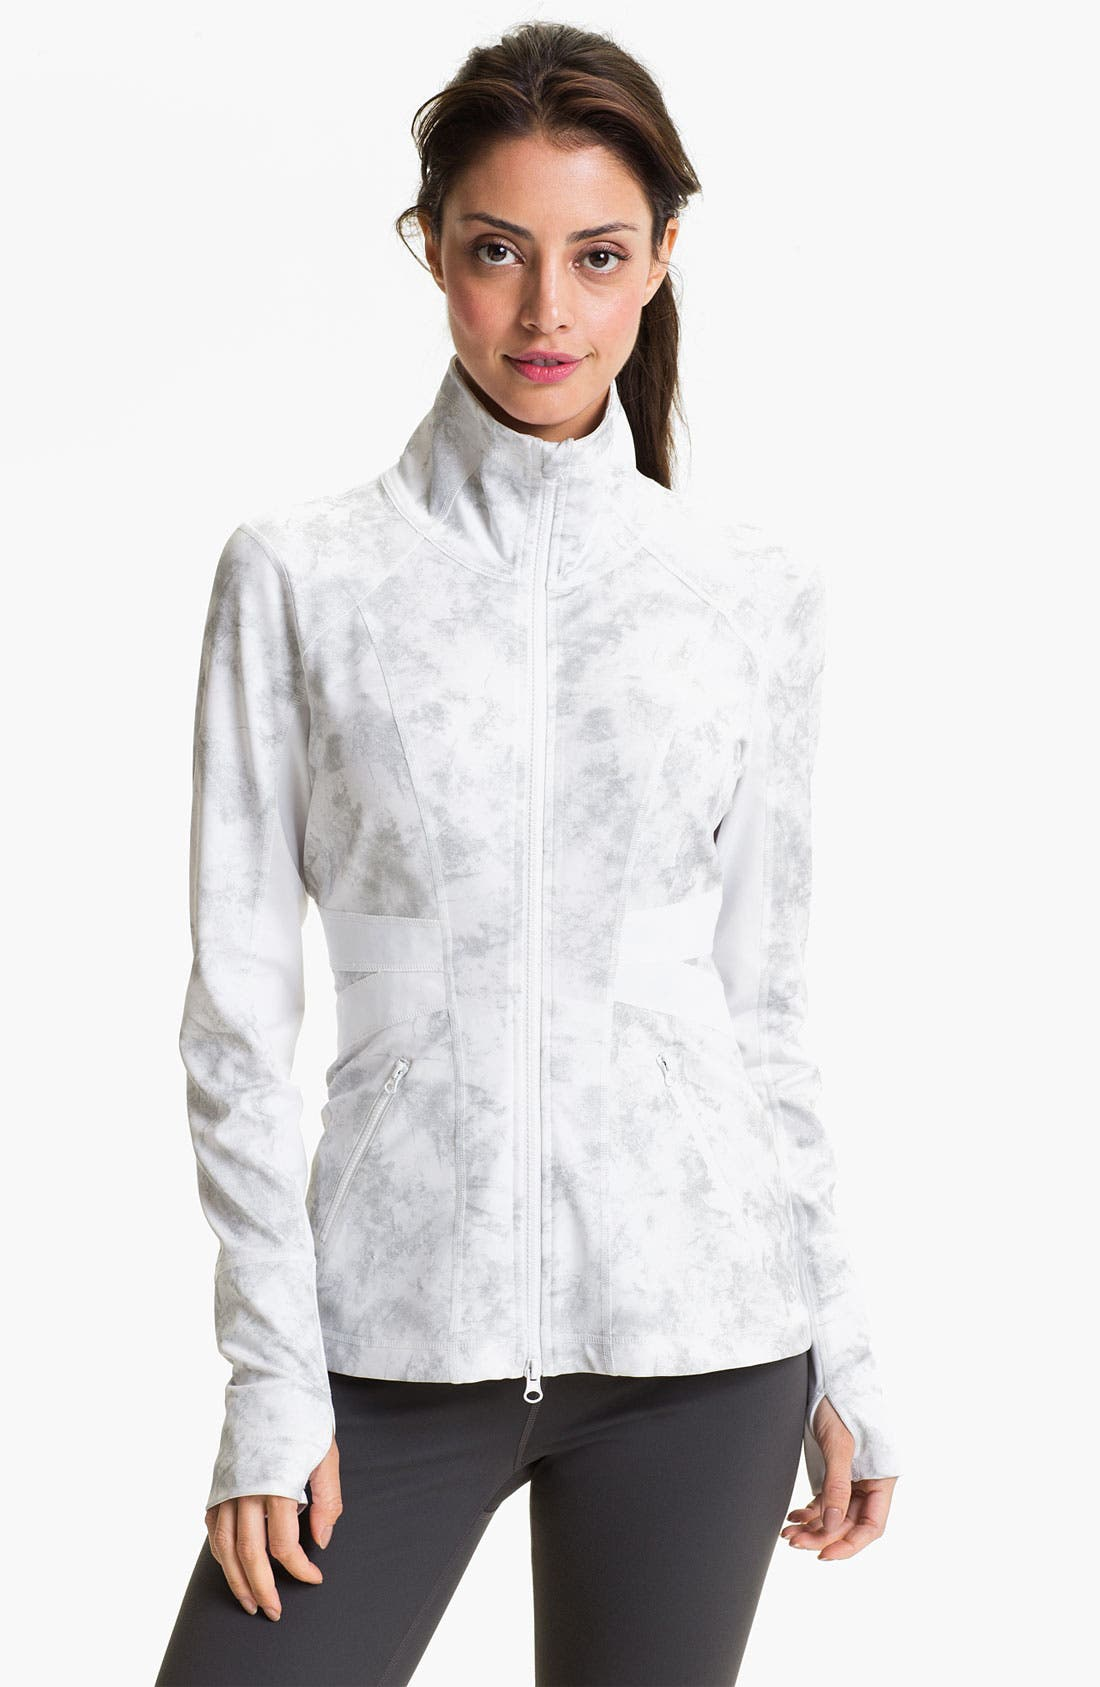 Alternate Image 1 Selected - Zella 'Karin' Fitted Jacket